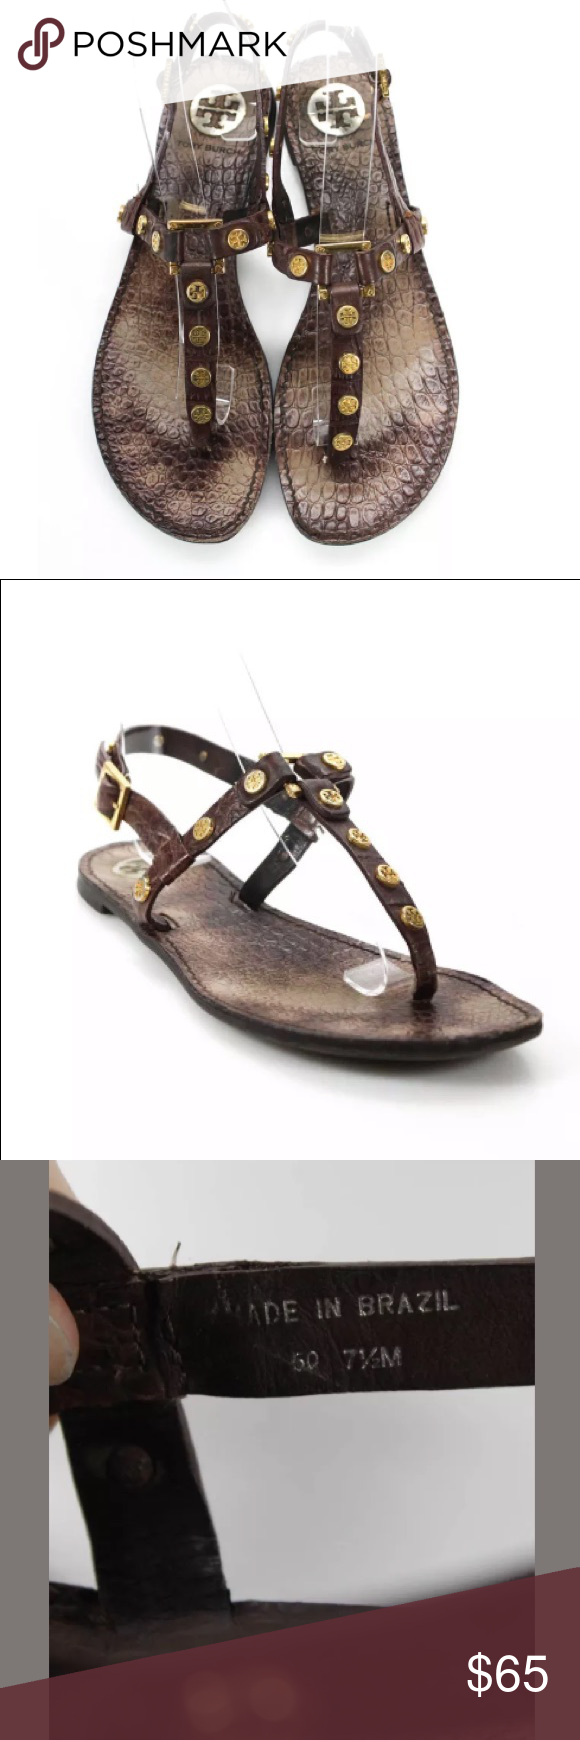 5051d465d55149 Tory Burch Marge Sandals Chocolate Brown